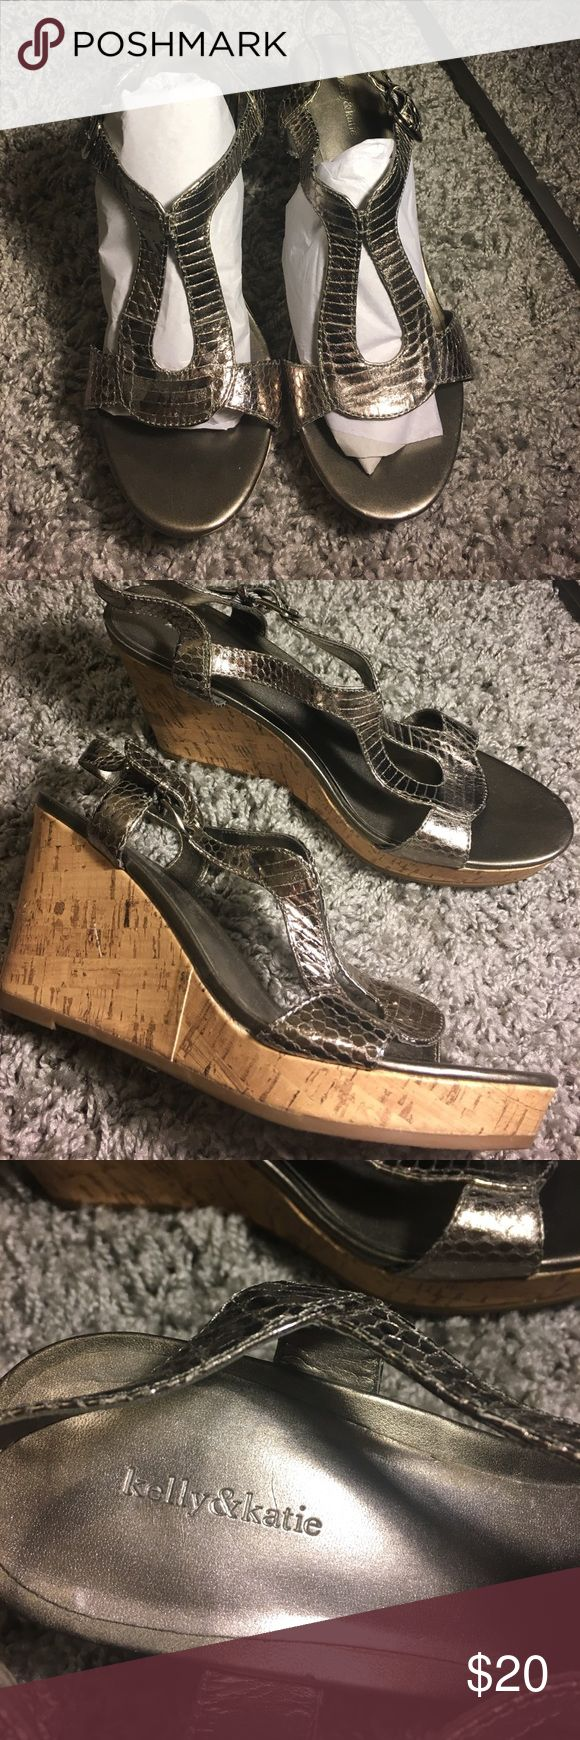 Silver wedge sandals 3 inch wedges with a 1 inch platform Kelly & Katie Shoes Wedges